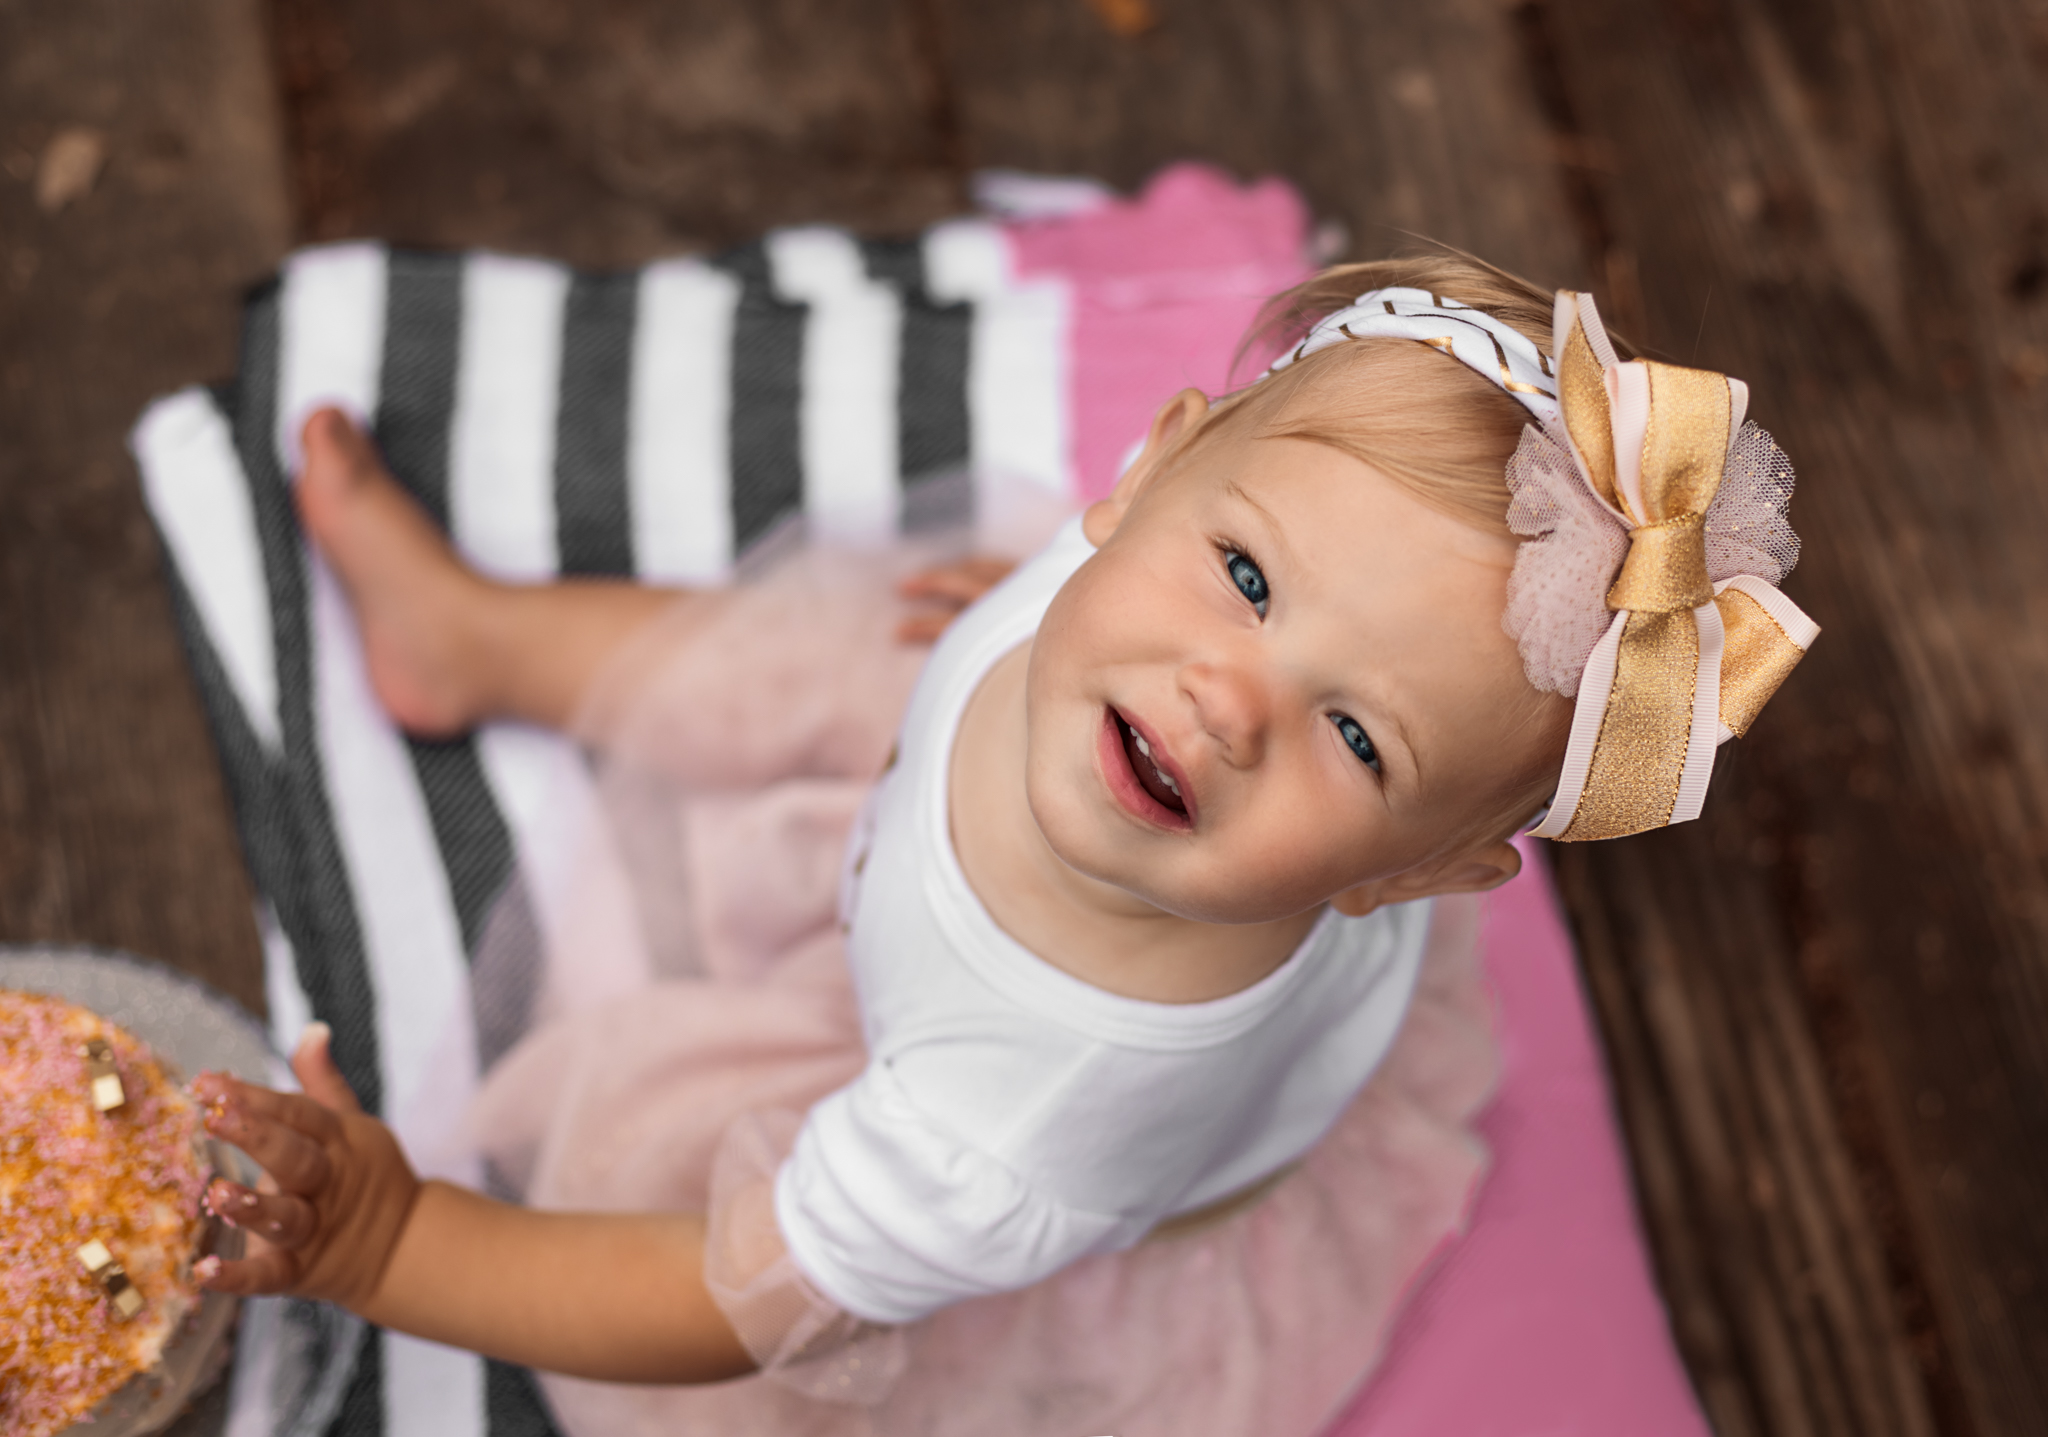 Happy First Birthday, Amelia's Cake Smash by Shannon Revelle Photography, Taylor, MI 48180